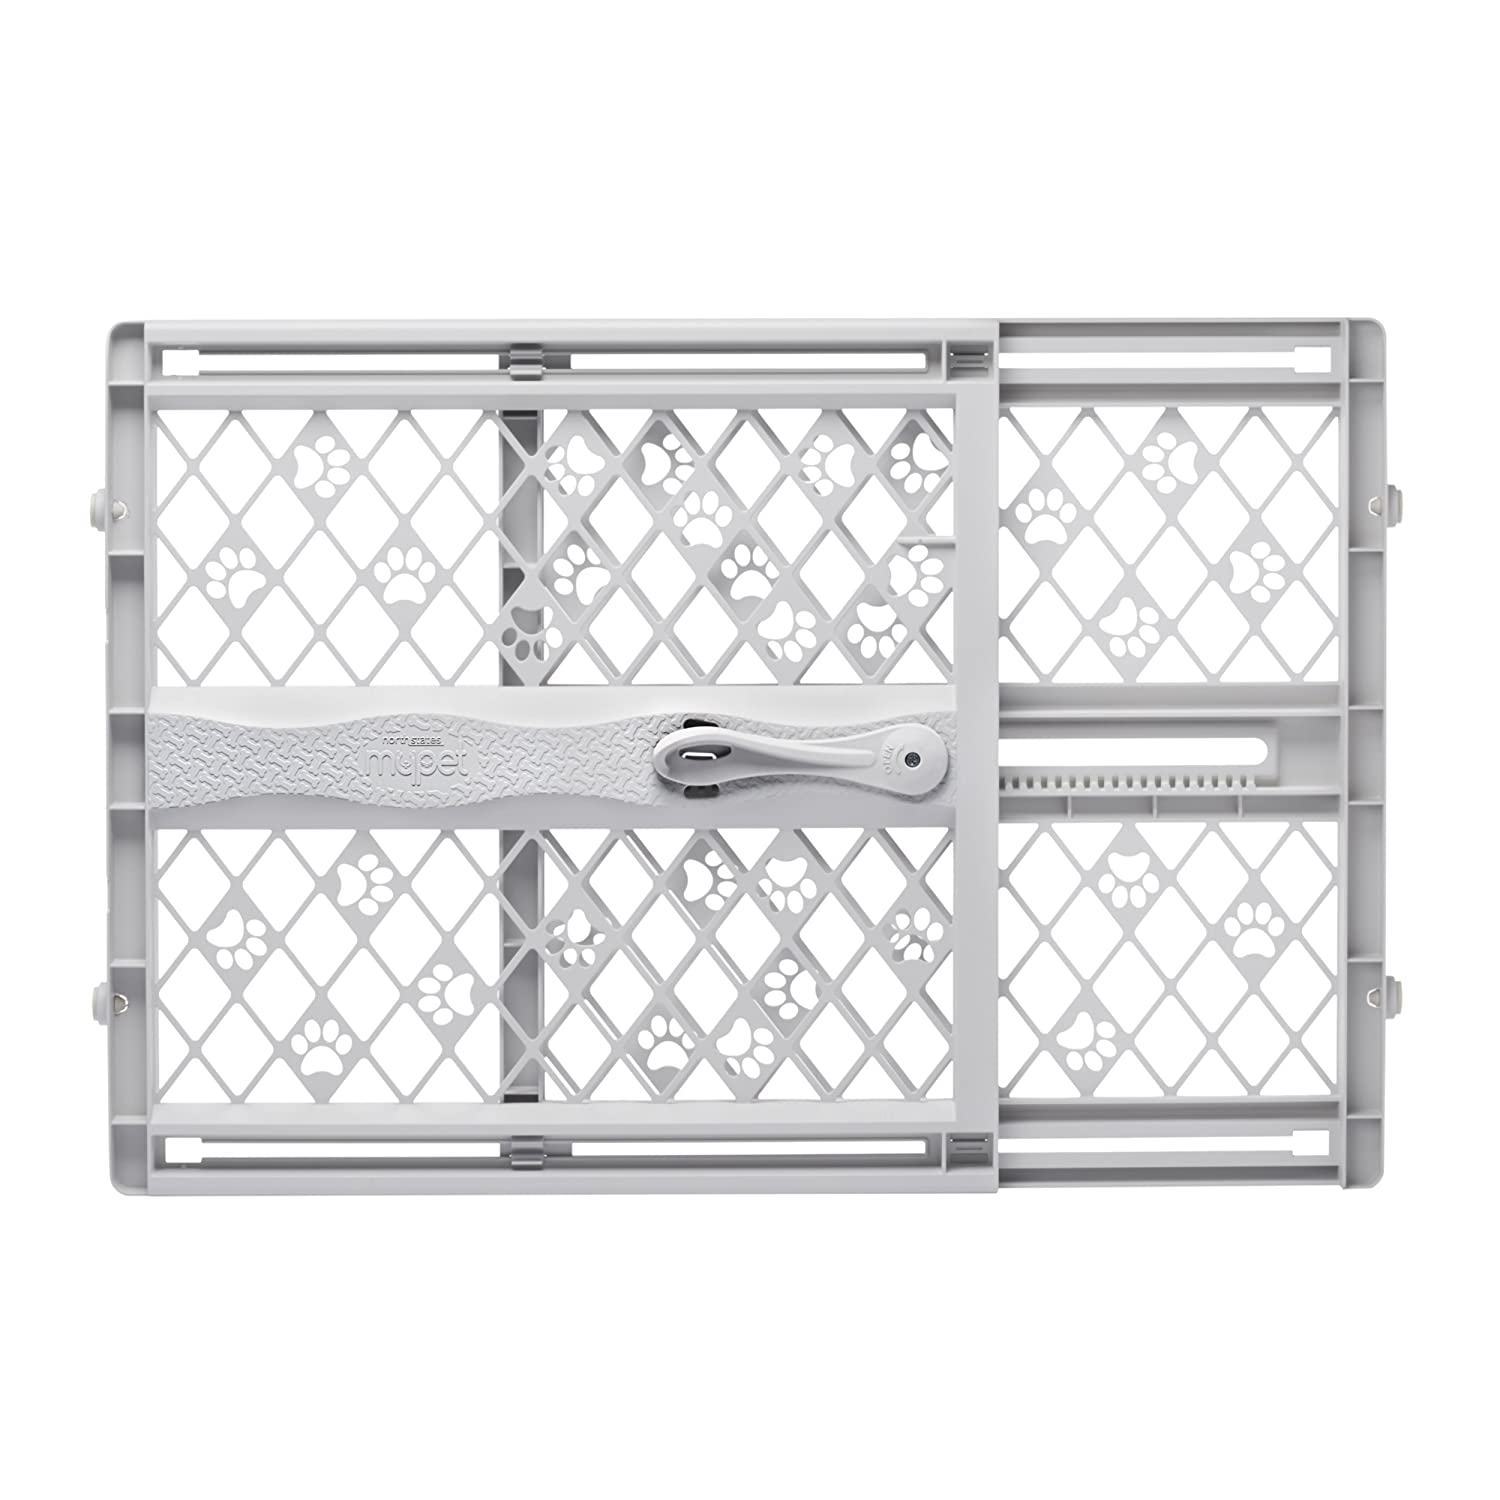 "North States MyPet Paws 42"" Portable Pet Gate: Expands and locks in place with no tools. Pressure Mount. Fits 26""-42"" wide (23"" tall, Light gray)"